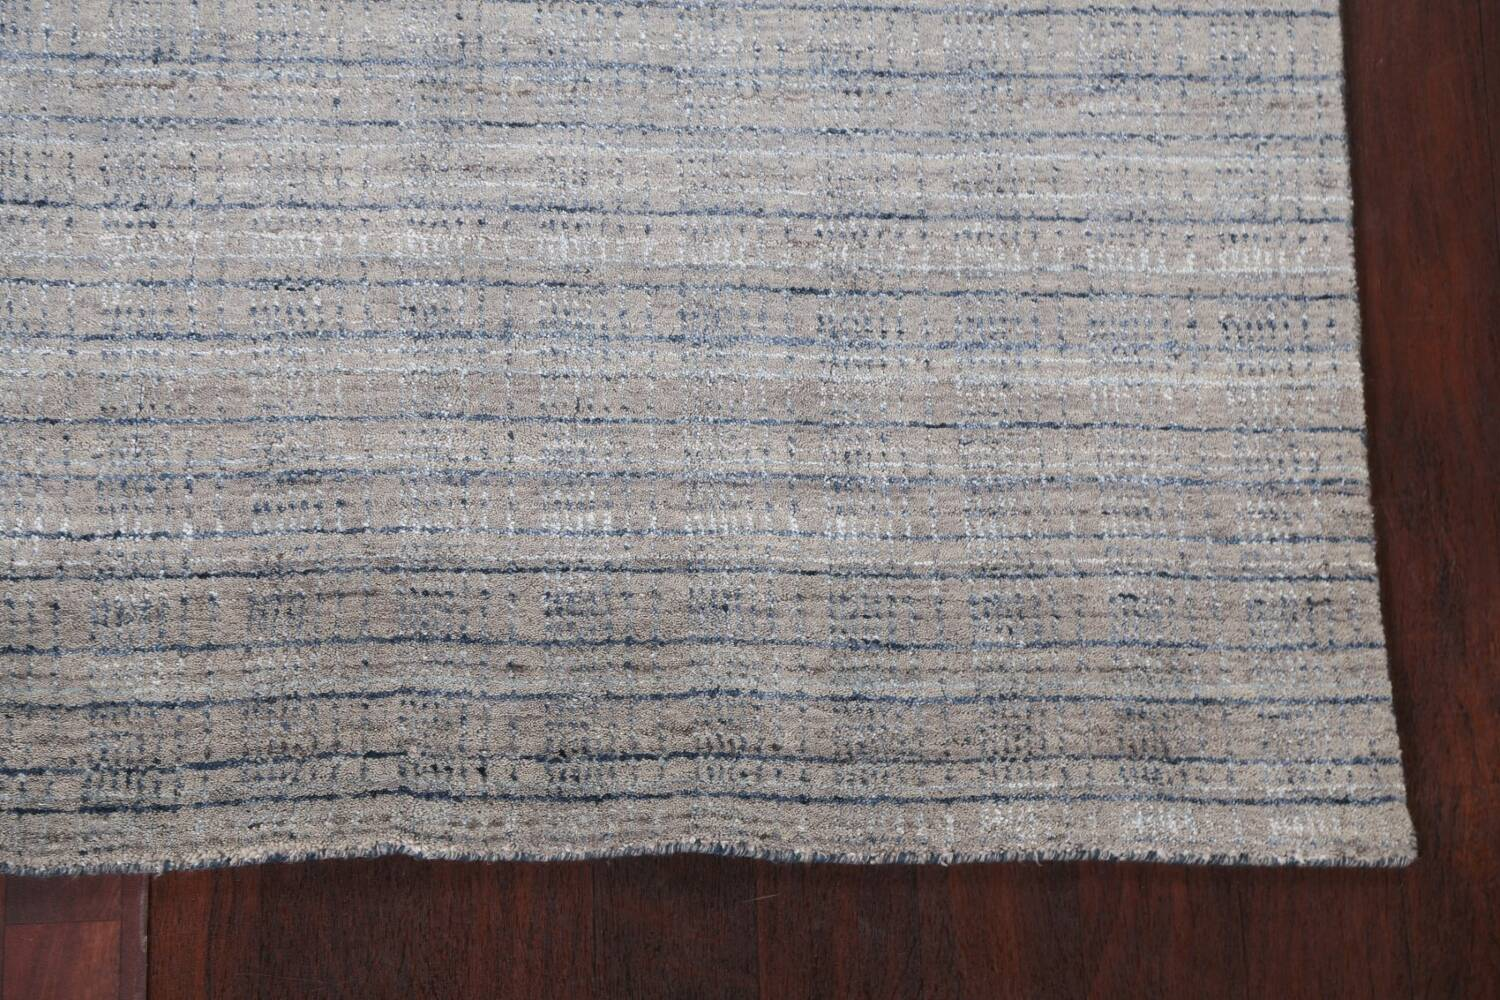 Contemporary Gabbeh Wool Area Rug 5x8 image 7